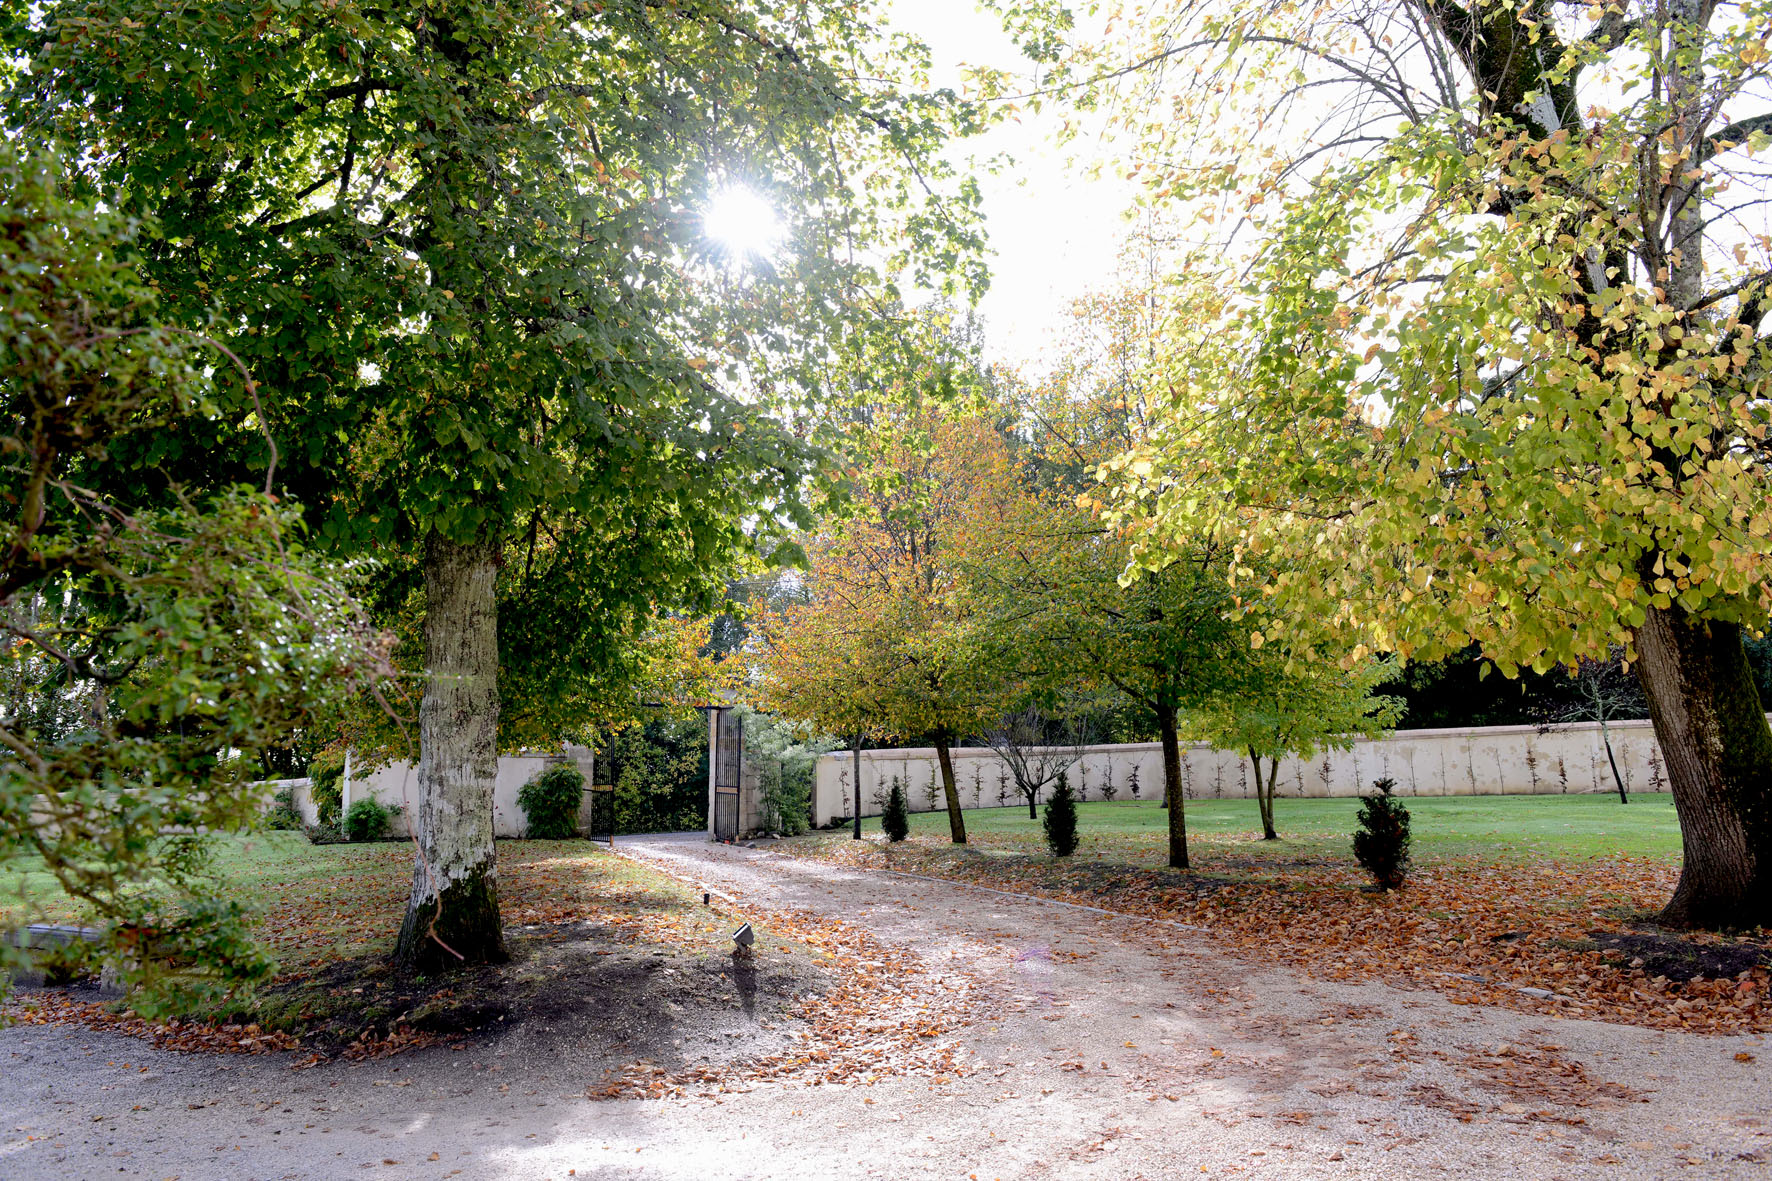 Entrance from the garden in the Château de Lantic